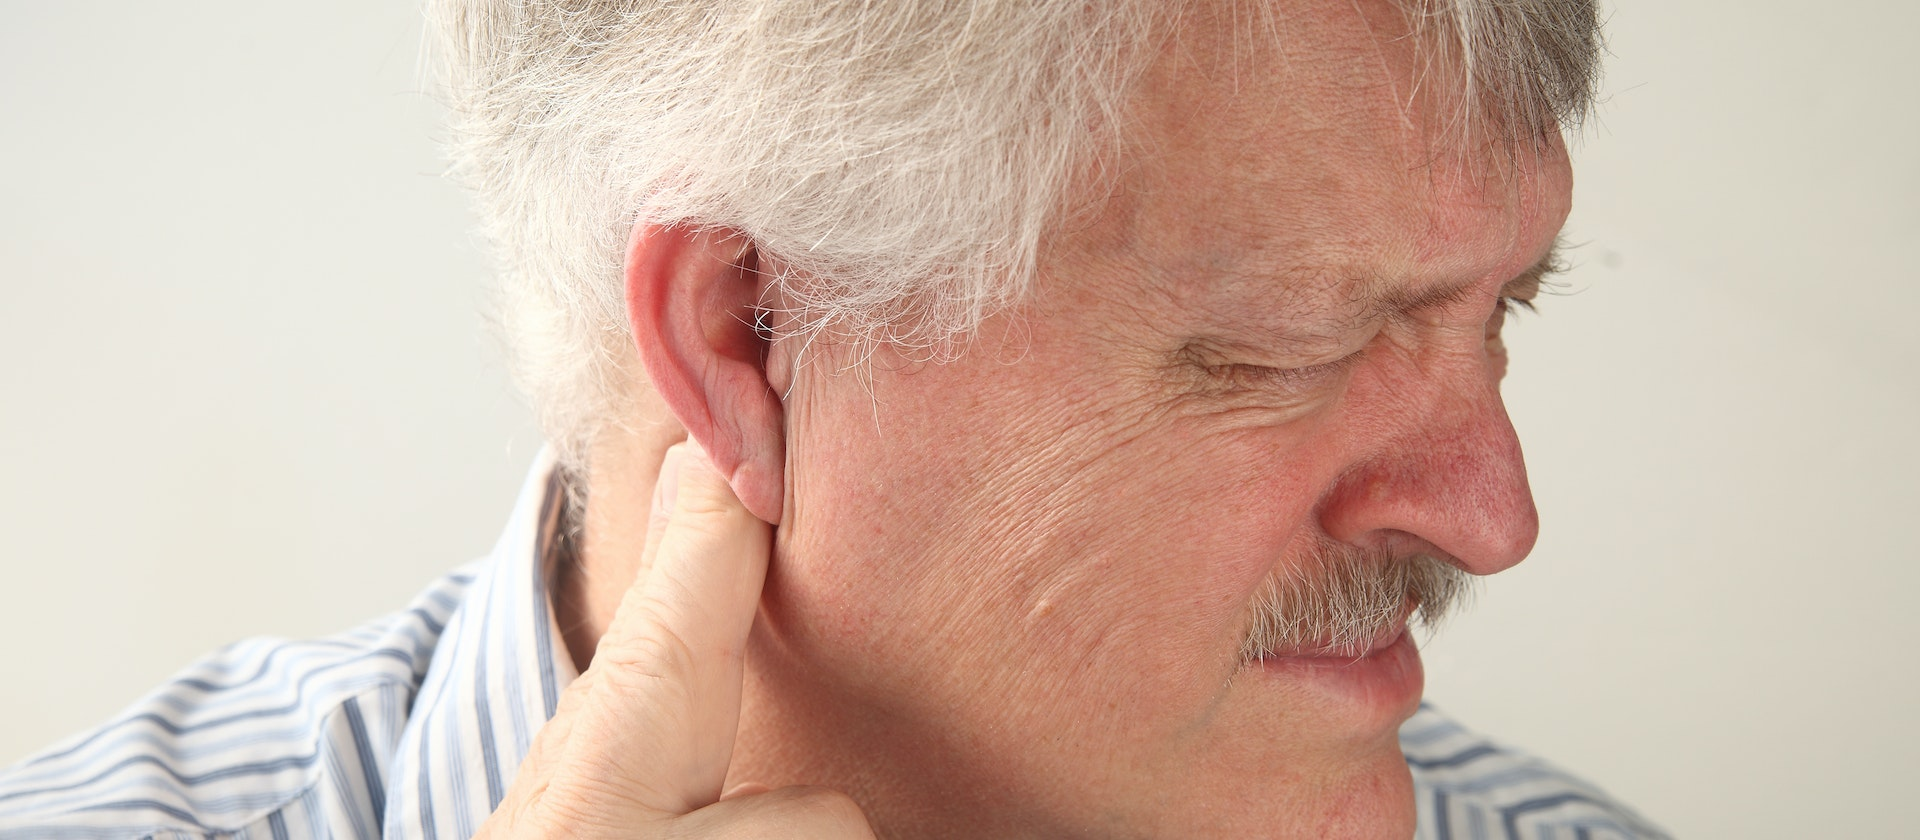 pain behind the ear symptoms causes common questions buoy